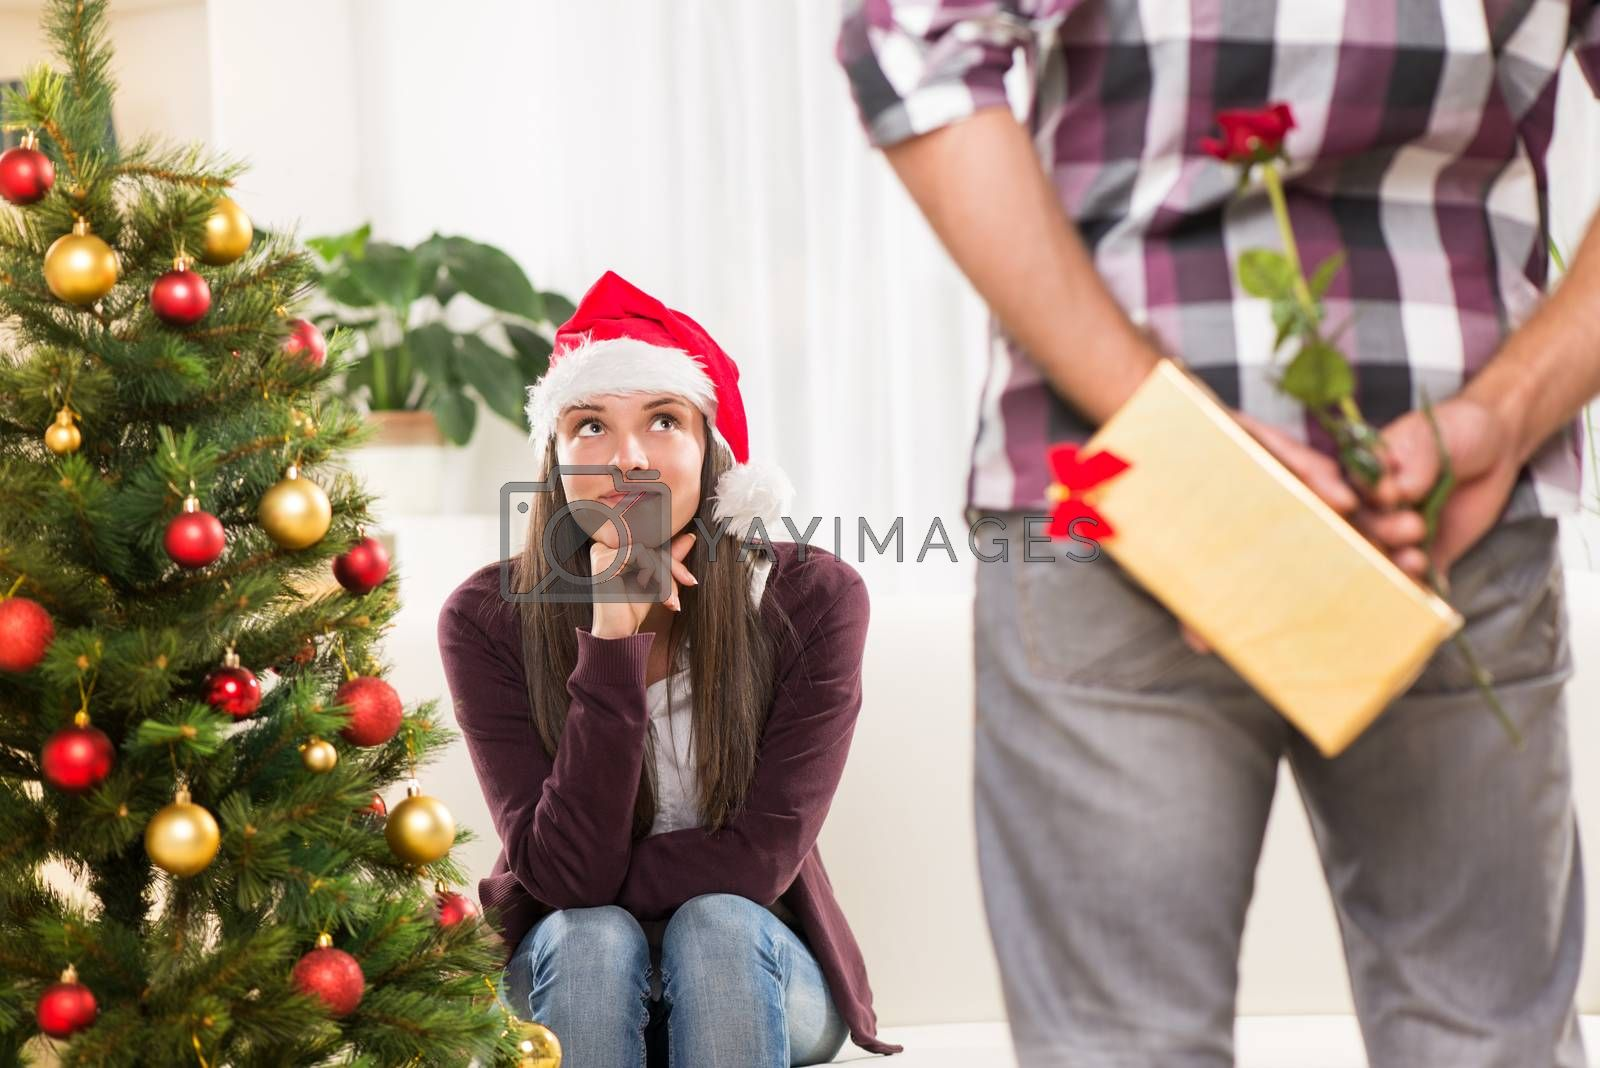 Young man has a Christmas present for his beautiful girlfriend and he wants to surprise her.